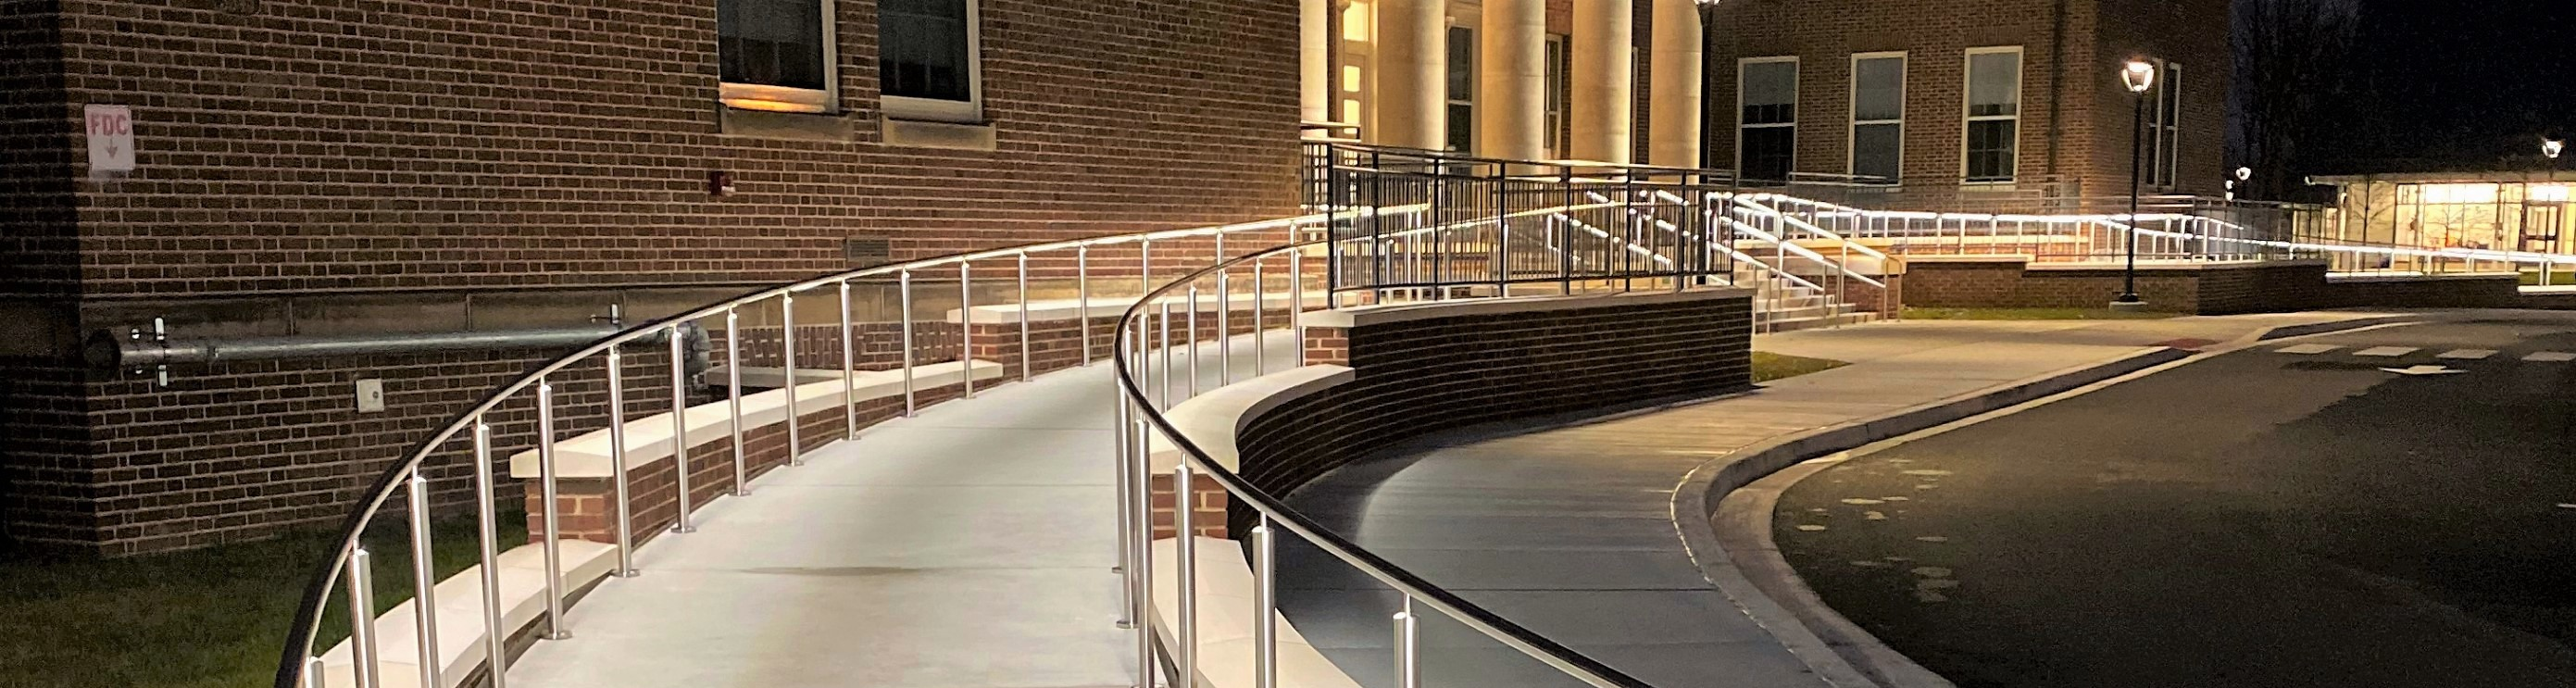 Maryland School for the Blind installs Circum LED to entrance area